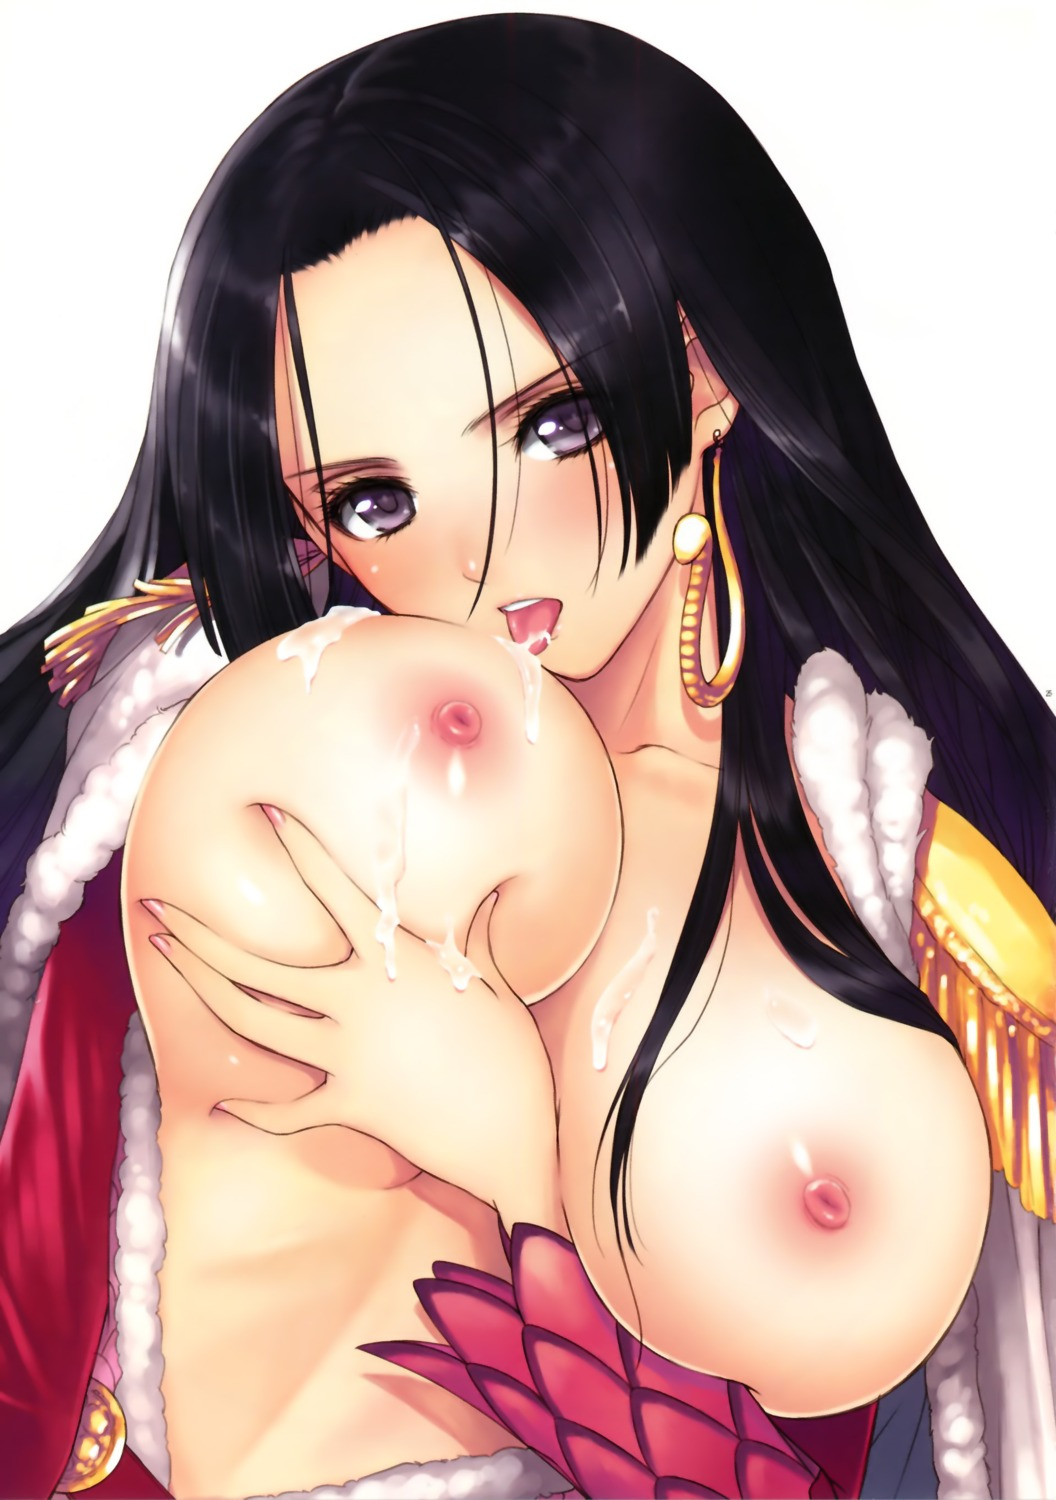 boa_hancock breast_grab breasts cum nipples no_bra one_piece open_shirt tony_taka